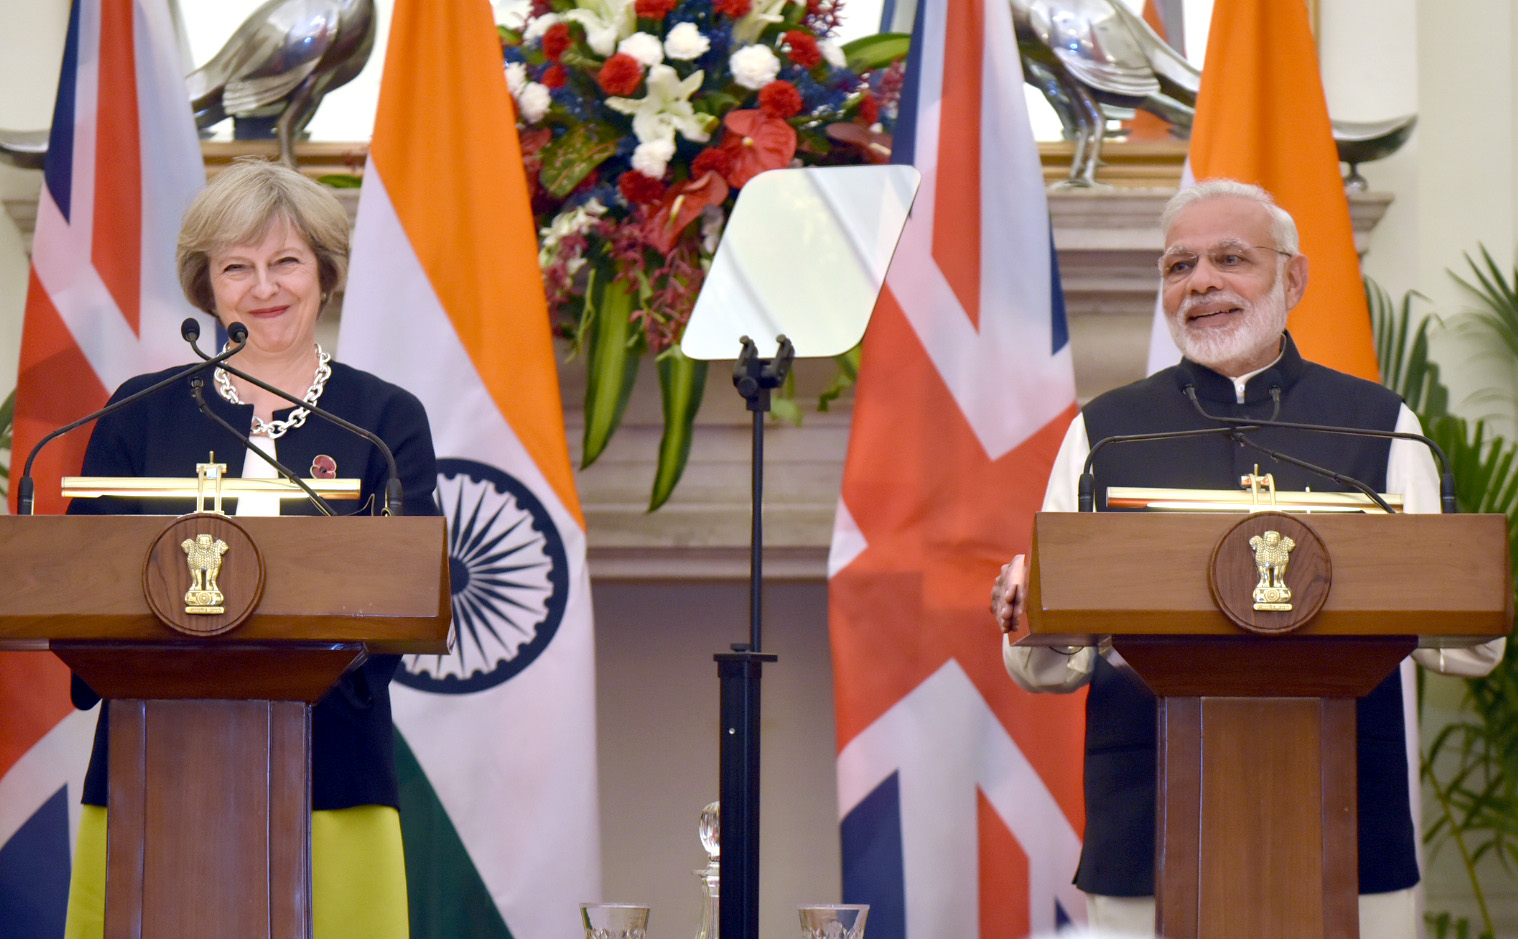 British Prime Minister Theresa May had insisted on 'taking back' Indian students illegally staying in UK during her visit to India (Photo: Press Information Bureau)